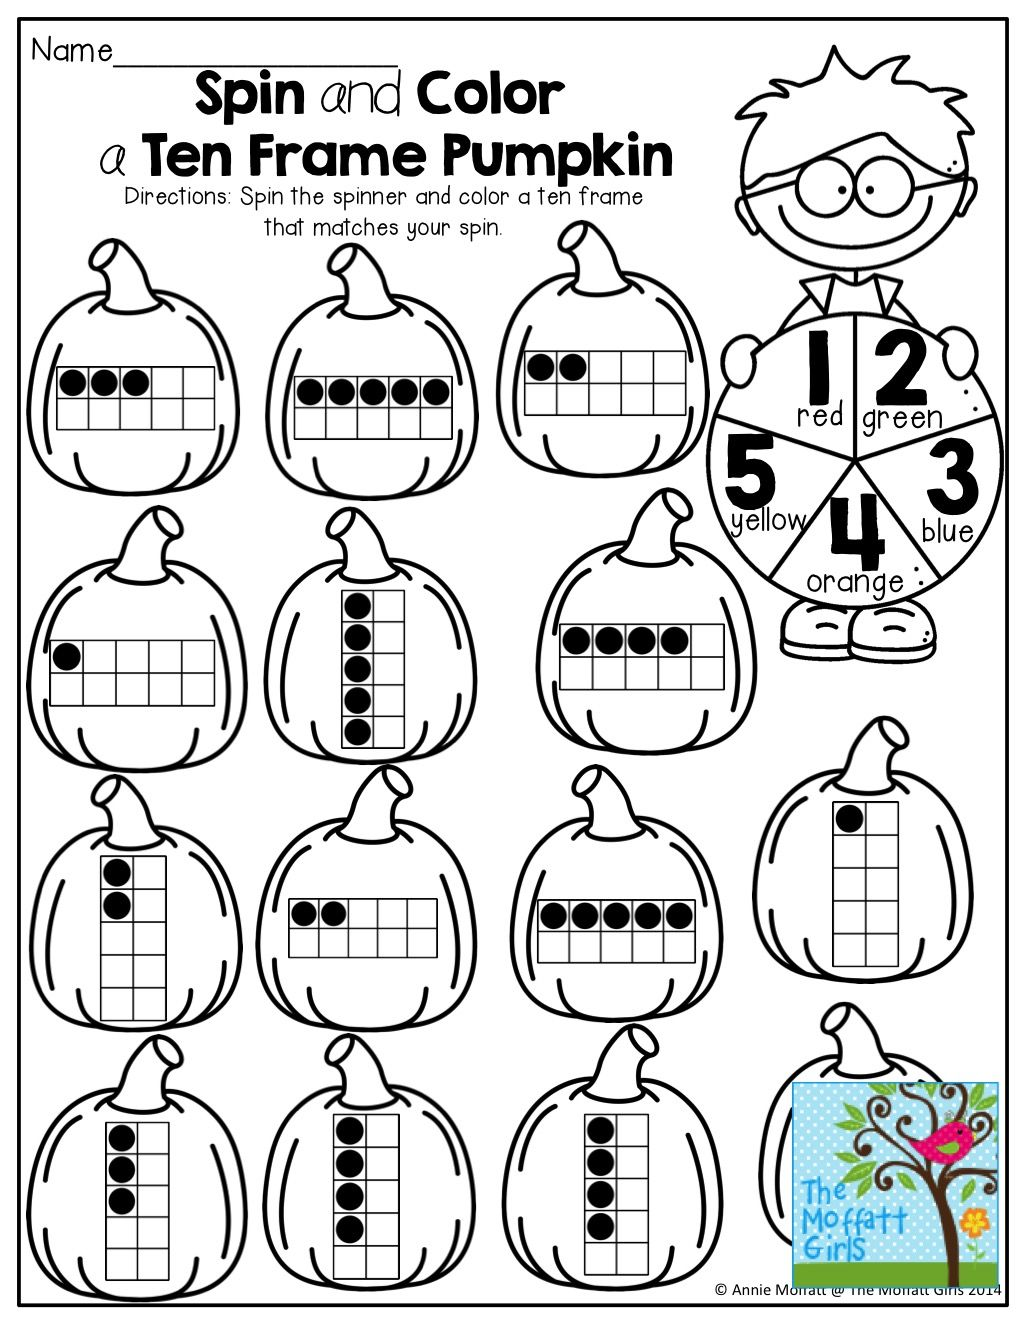 Spin And Color A Ten Frame Use A Paperclip Spinner To Spin A Number Find A Ten Frame To Match